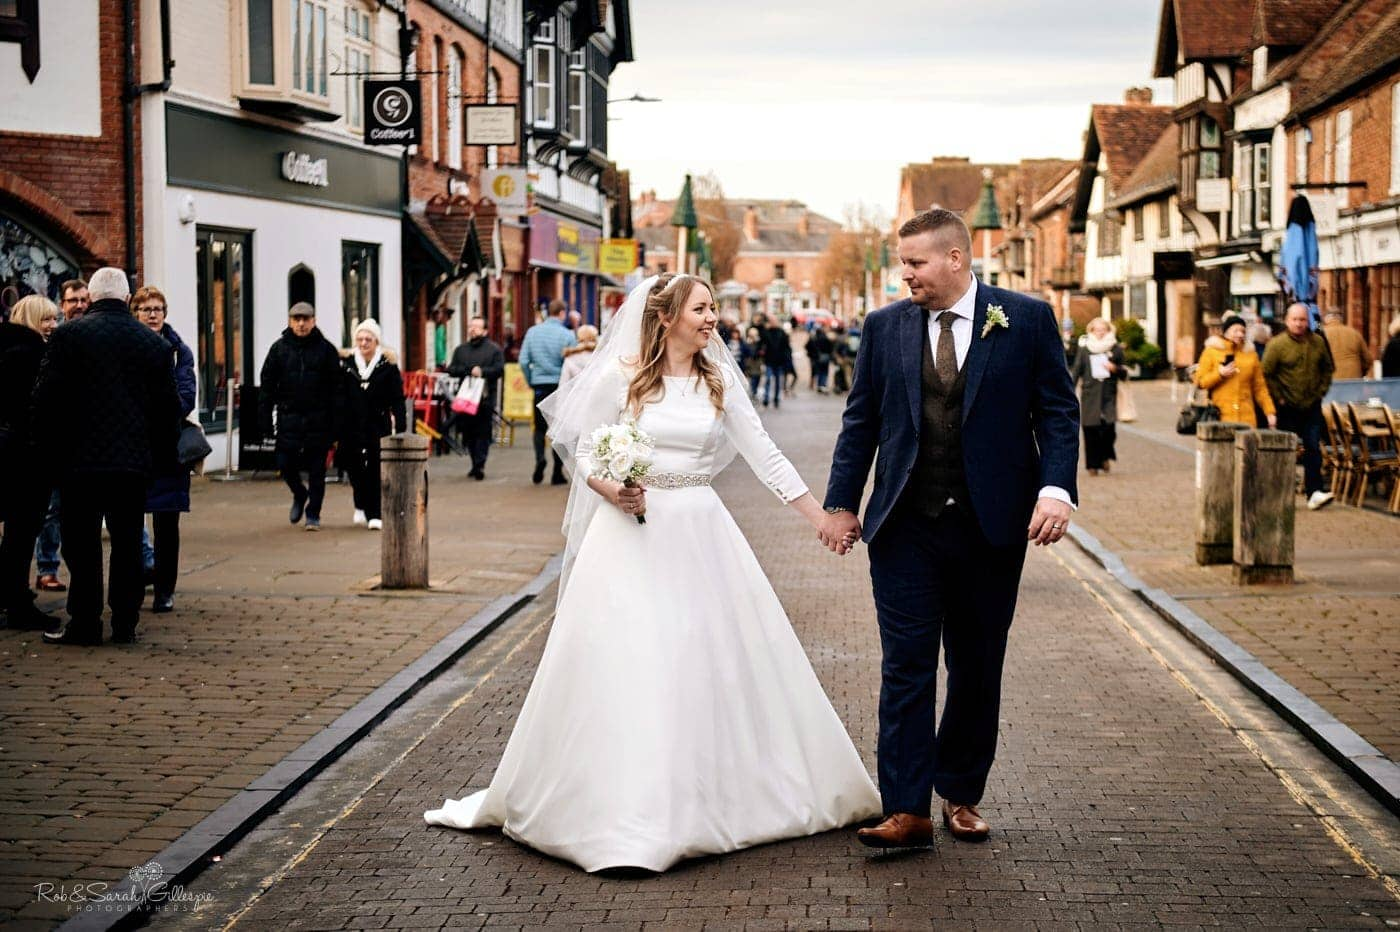 Bride and groom walk hand in hand through street in Stratford-upon-Avon